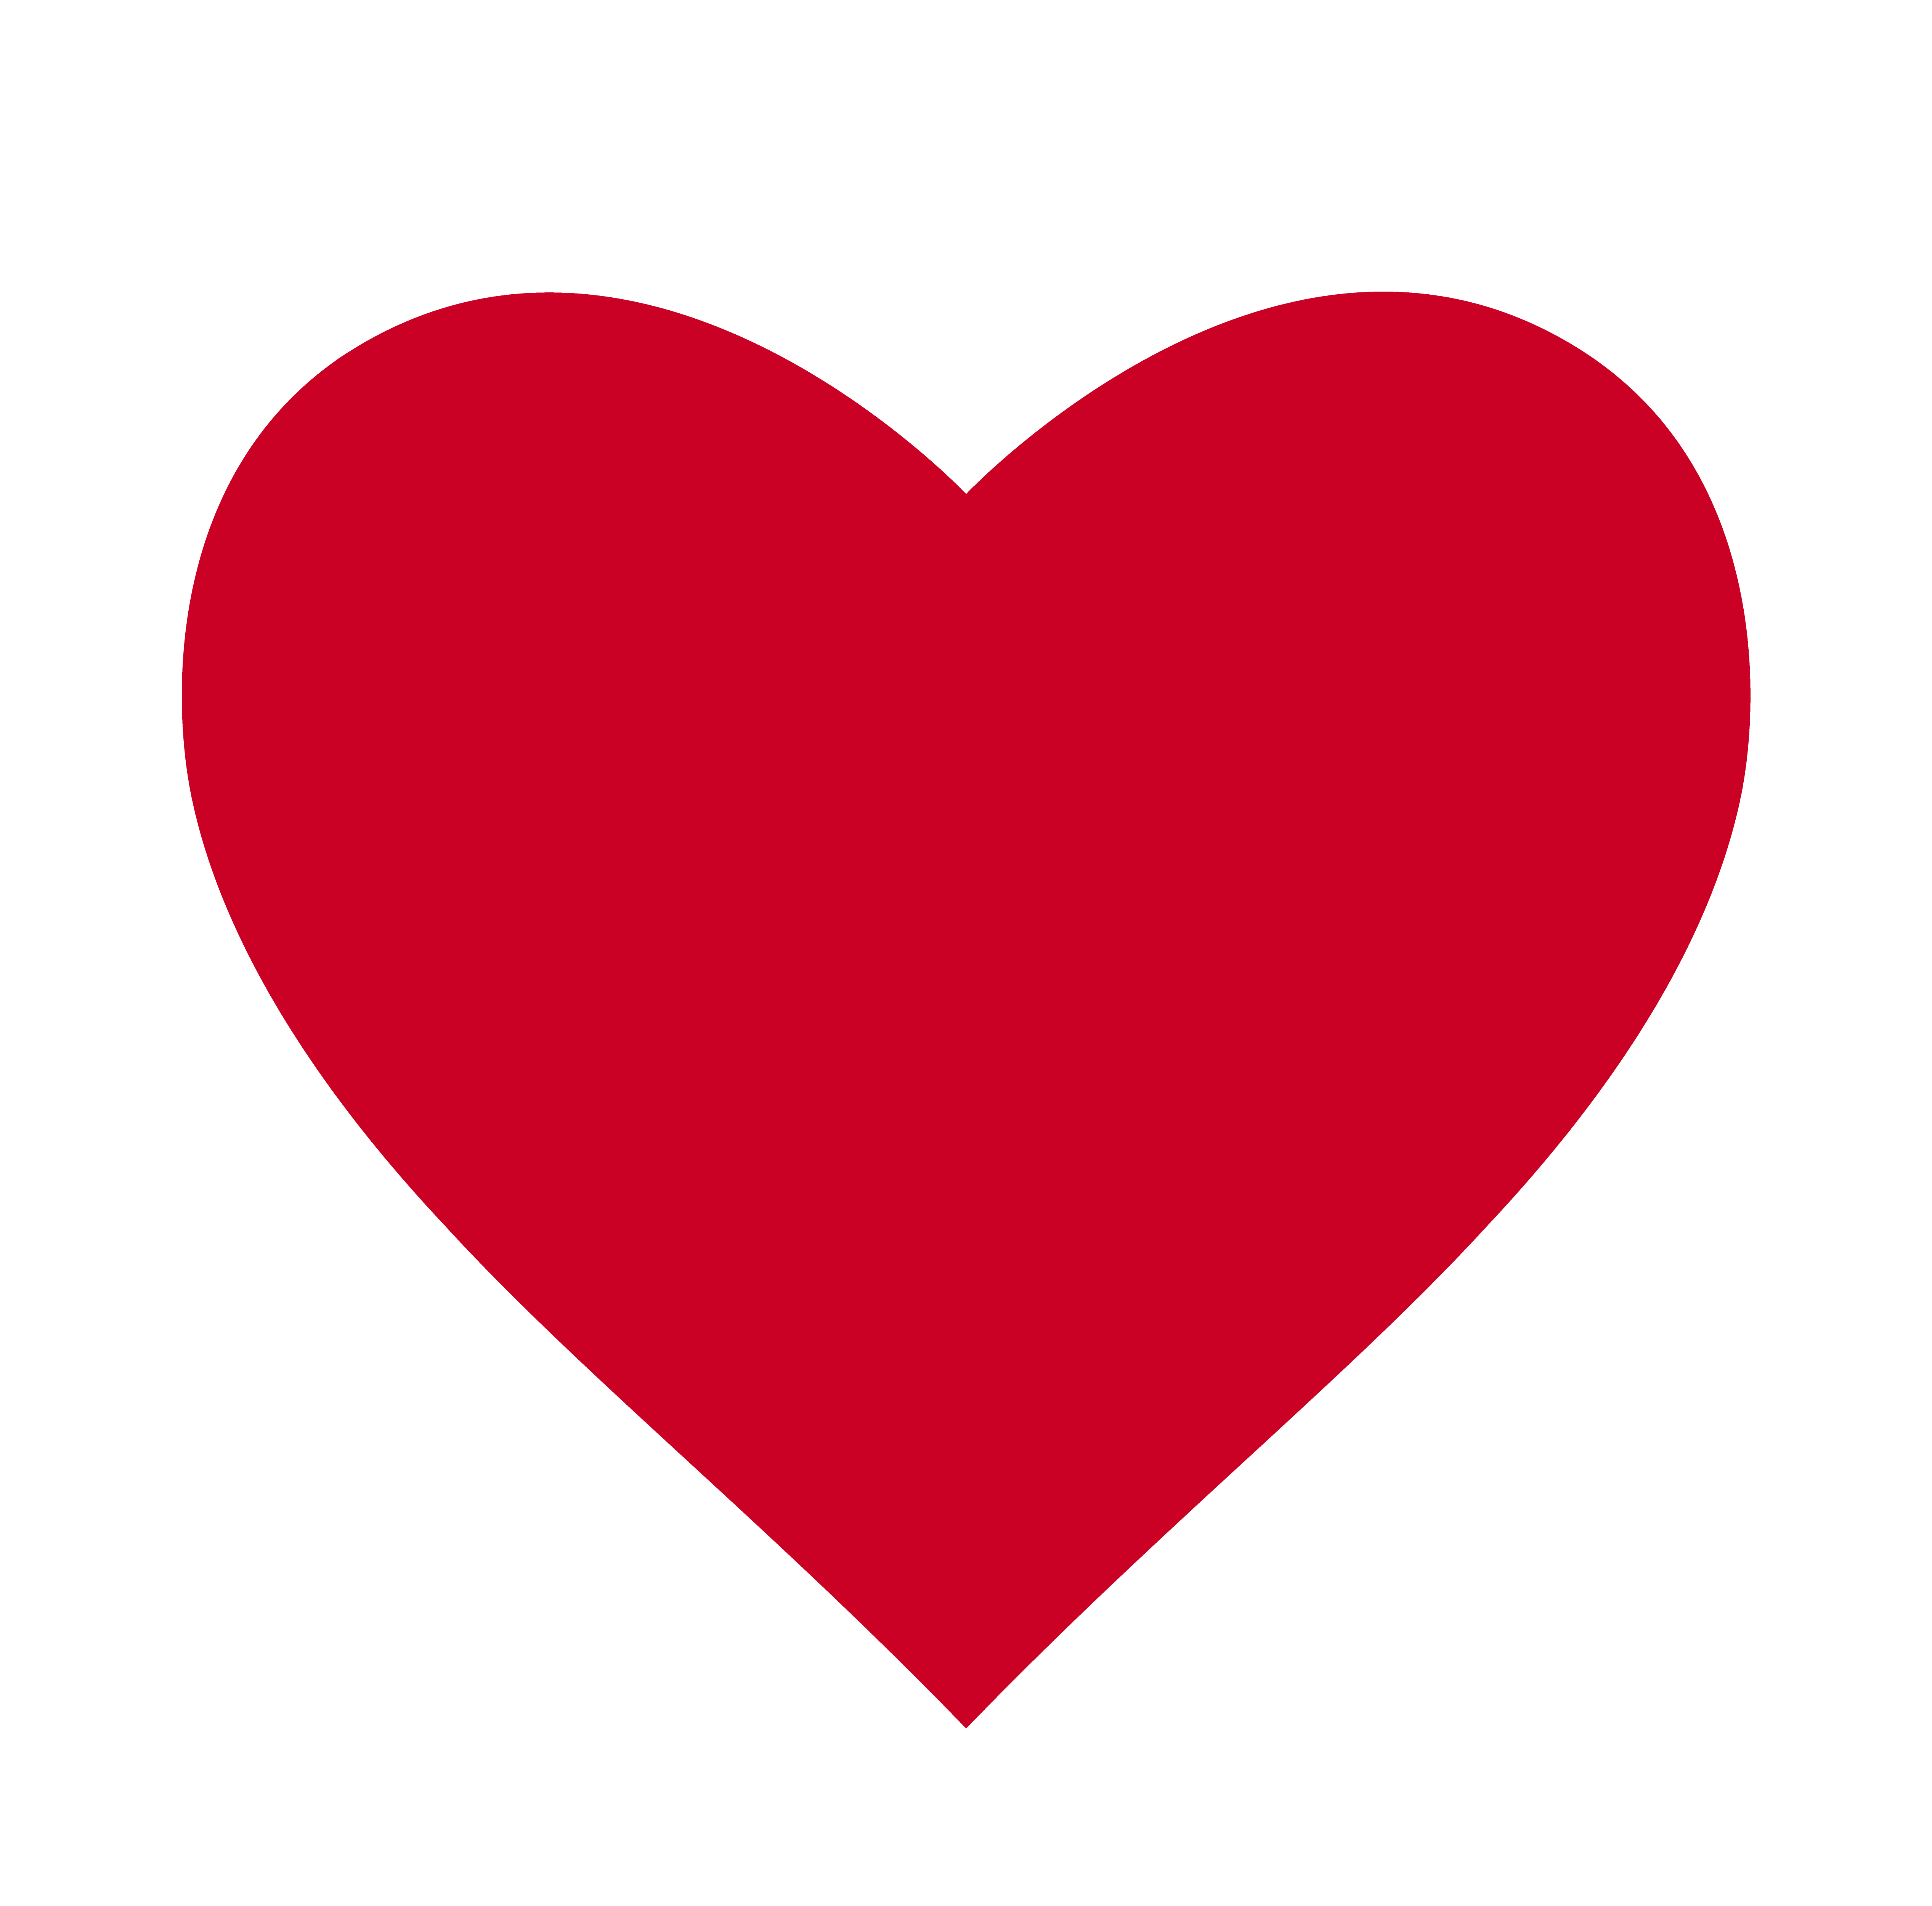 Heart, Symbol of Love and Valentine's Day. Flat Red Icon ...